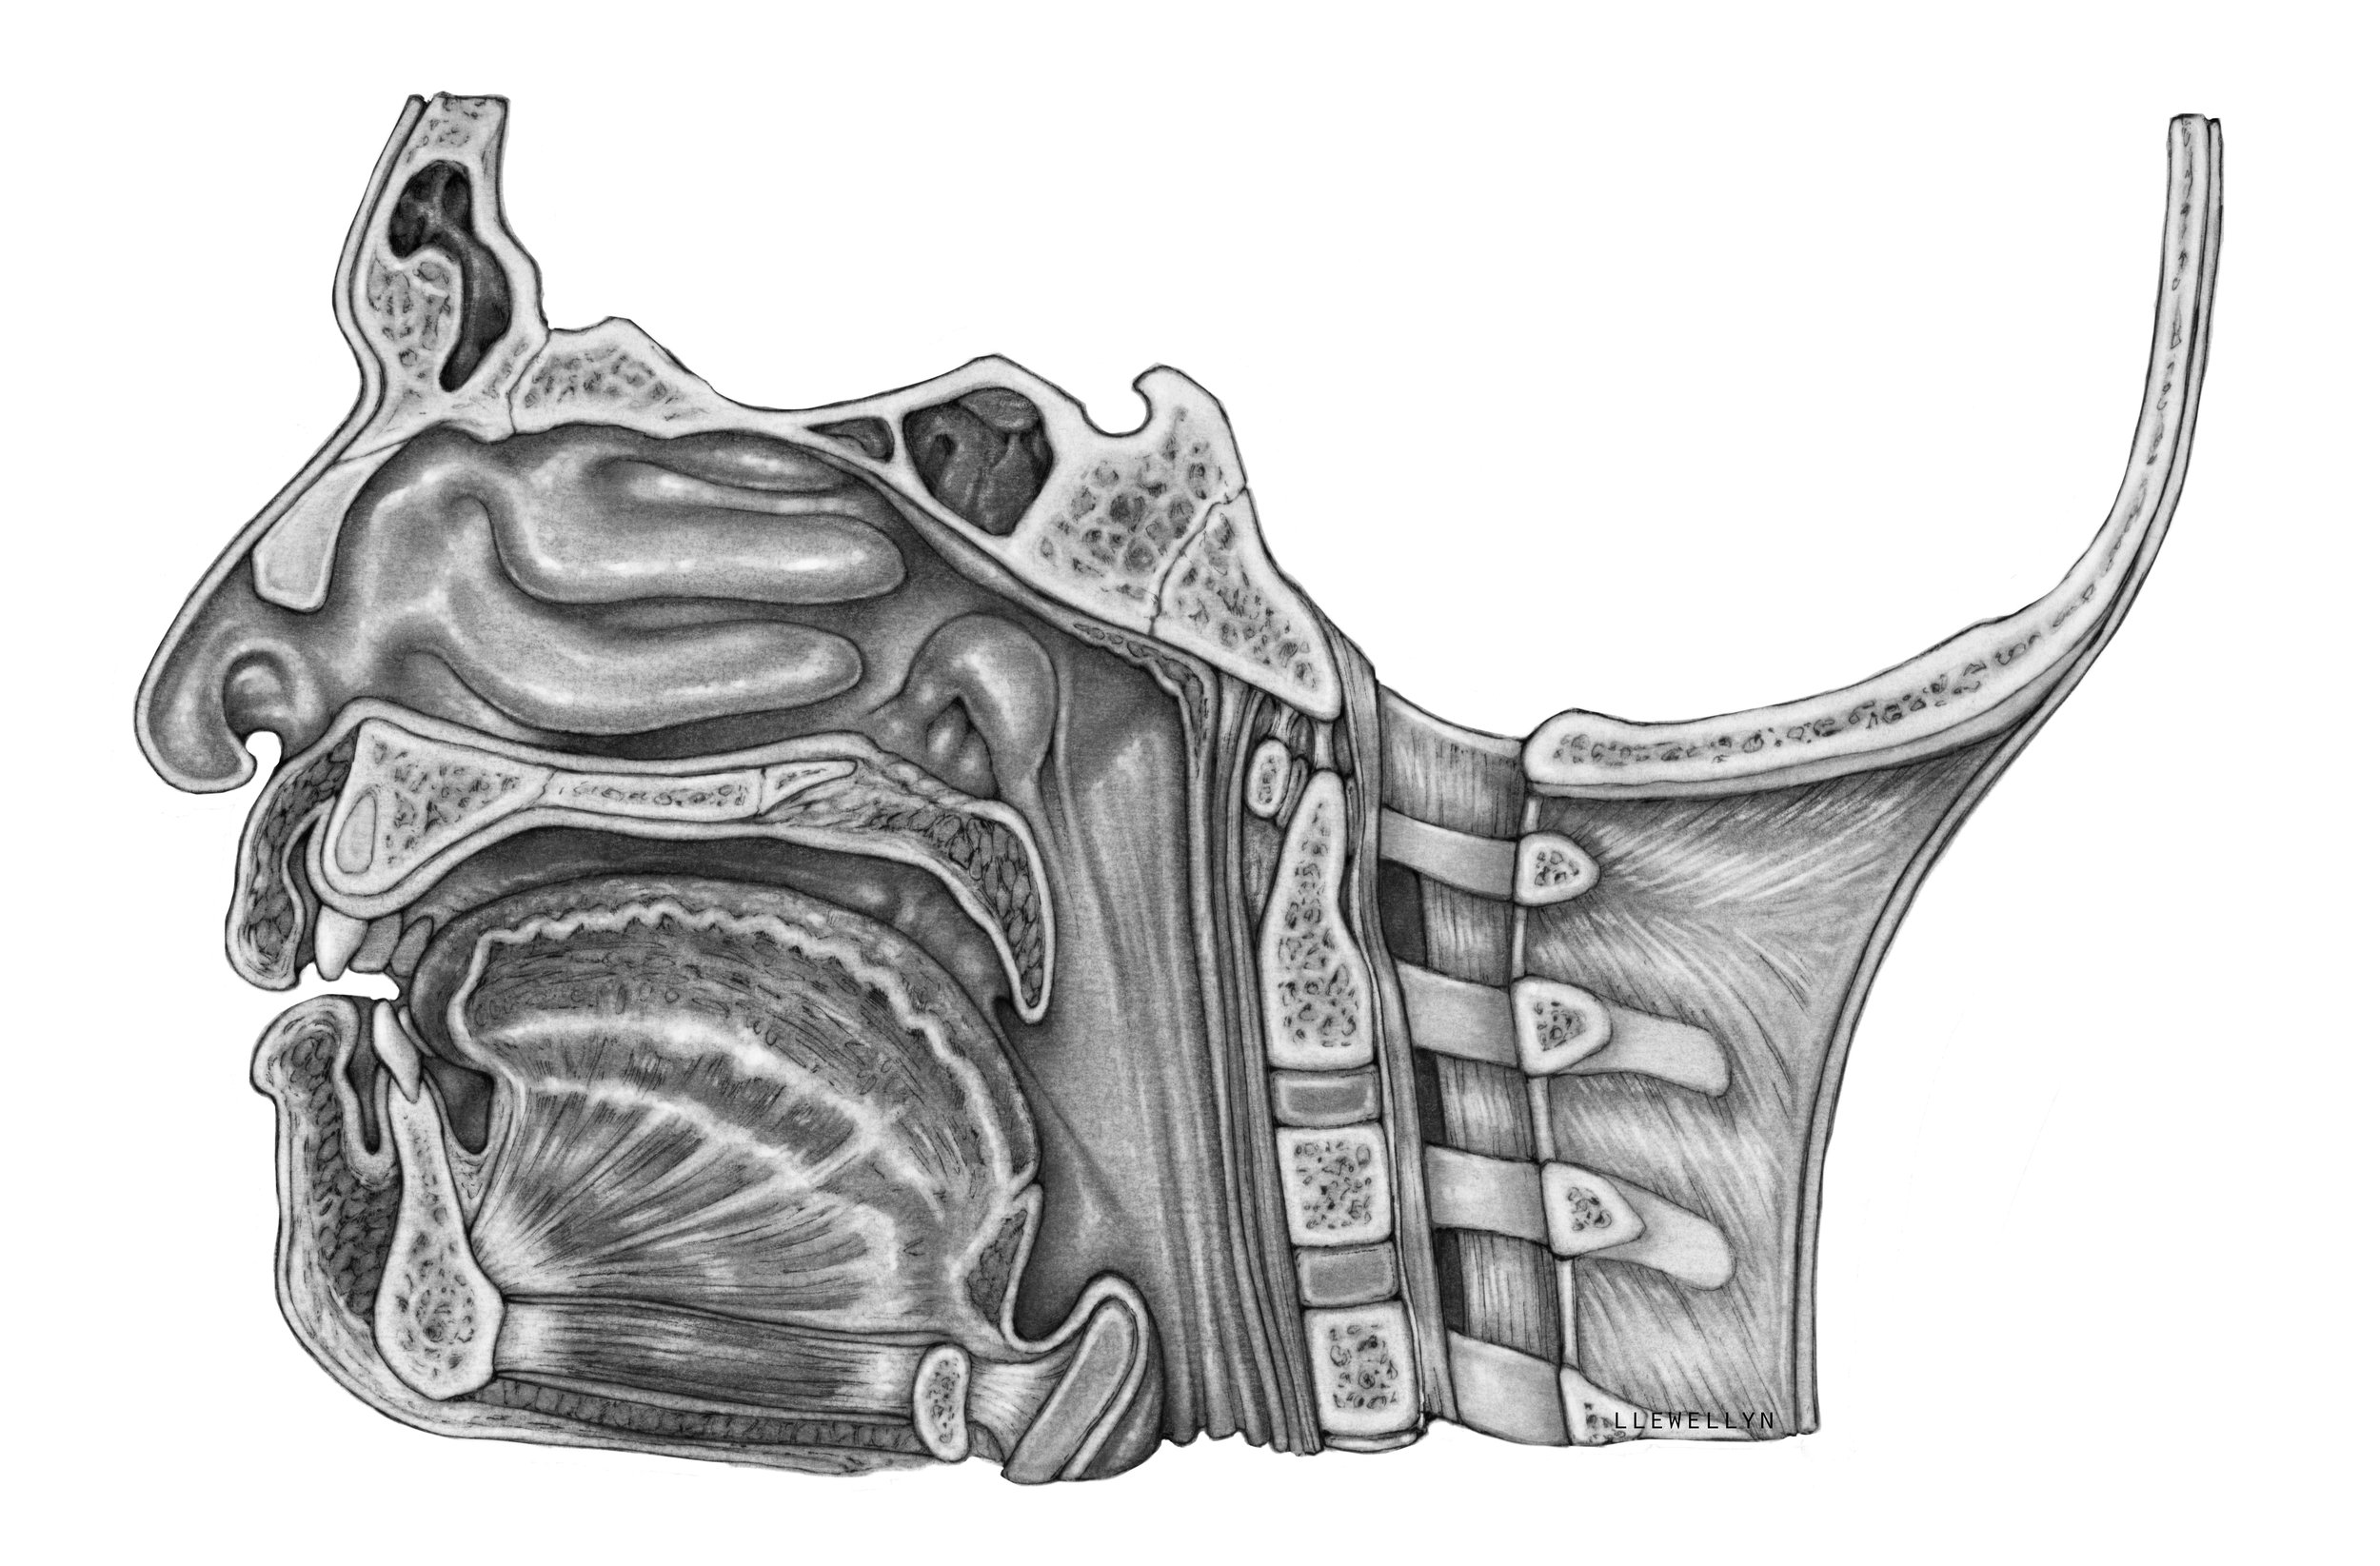 Midsaggital section of the head